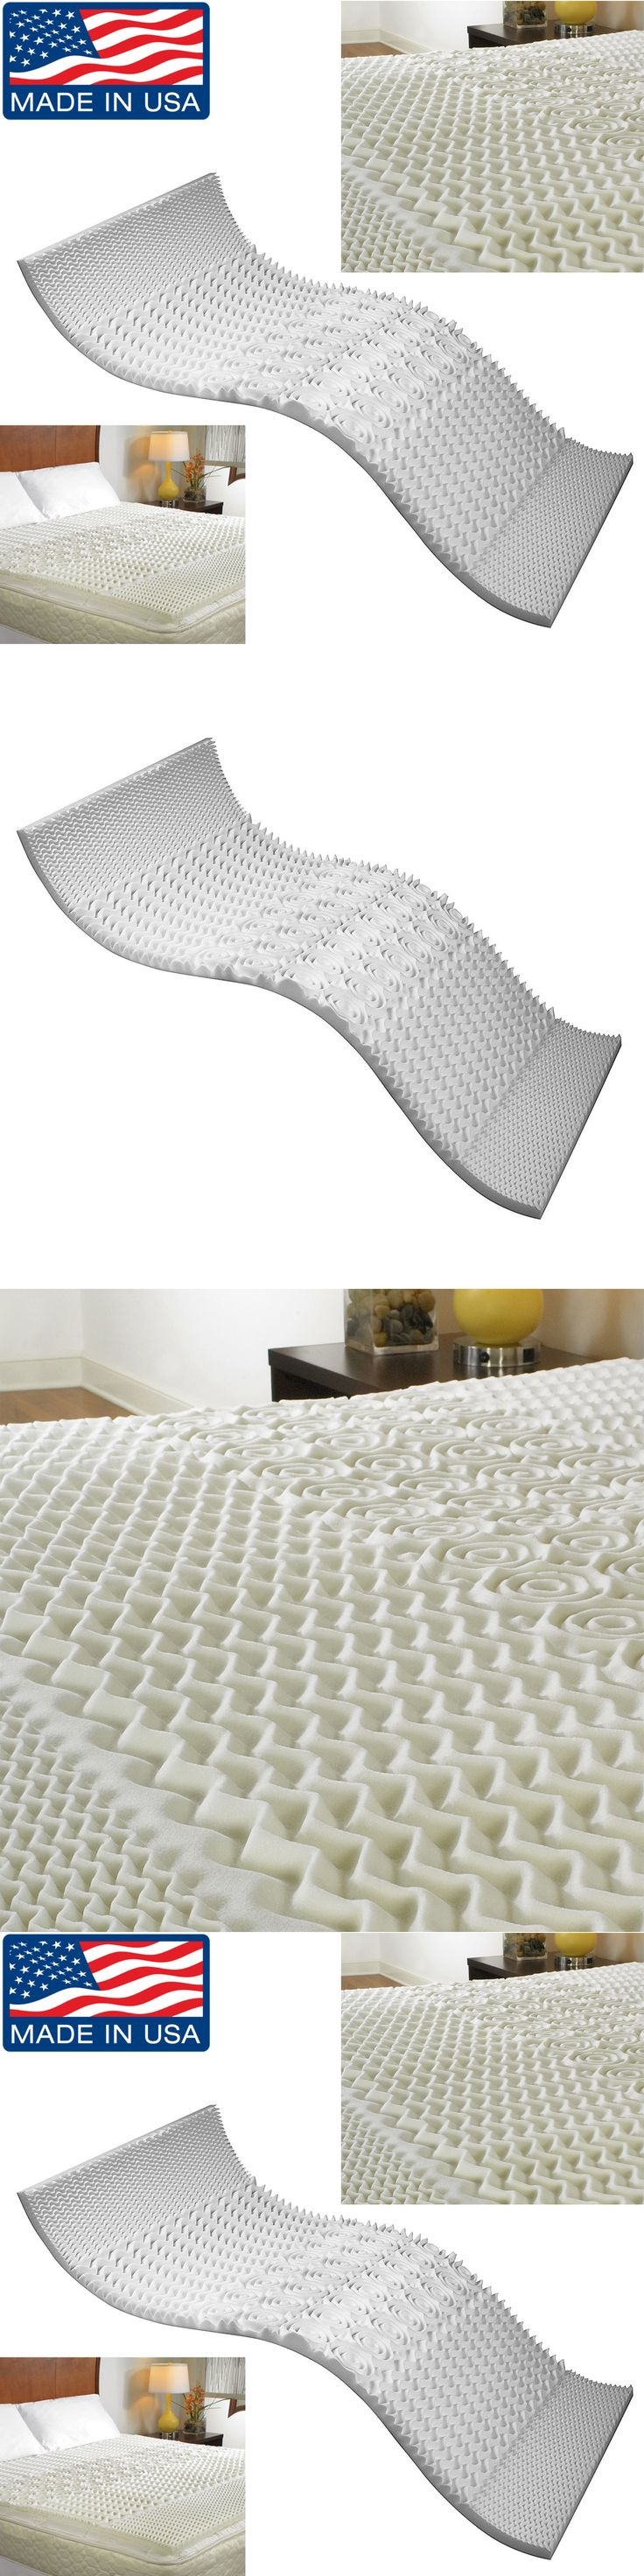 Mattress Pads and Feather Beds 175751: Memory Foam Mattress Topper  Hypoallergenic Cooling Gel Orthopedic Pad